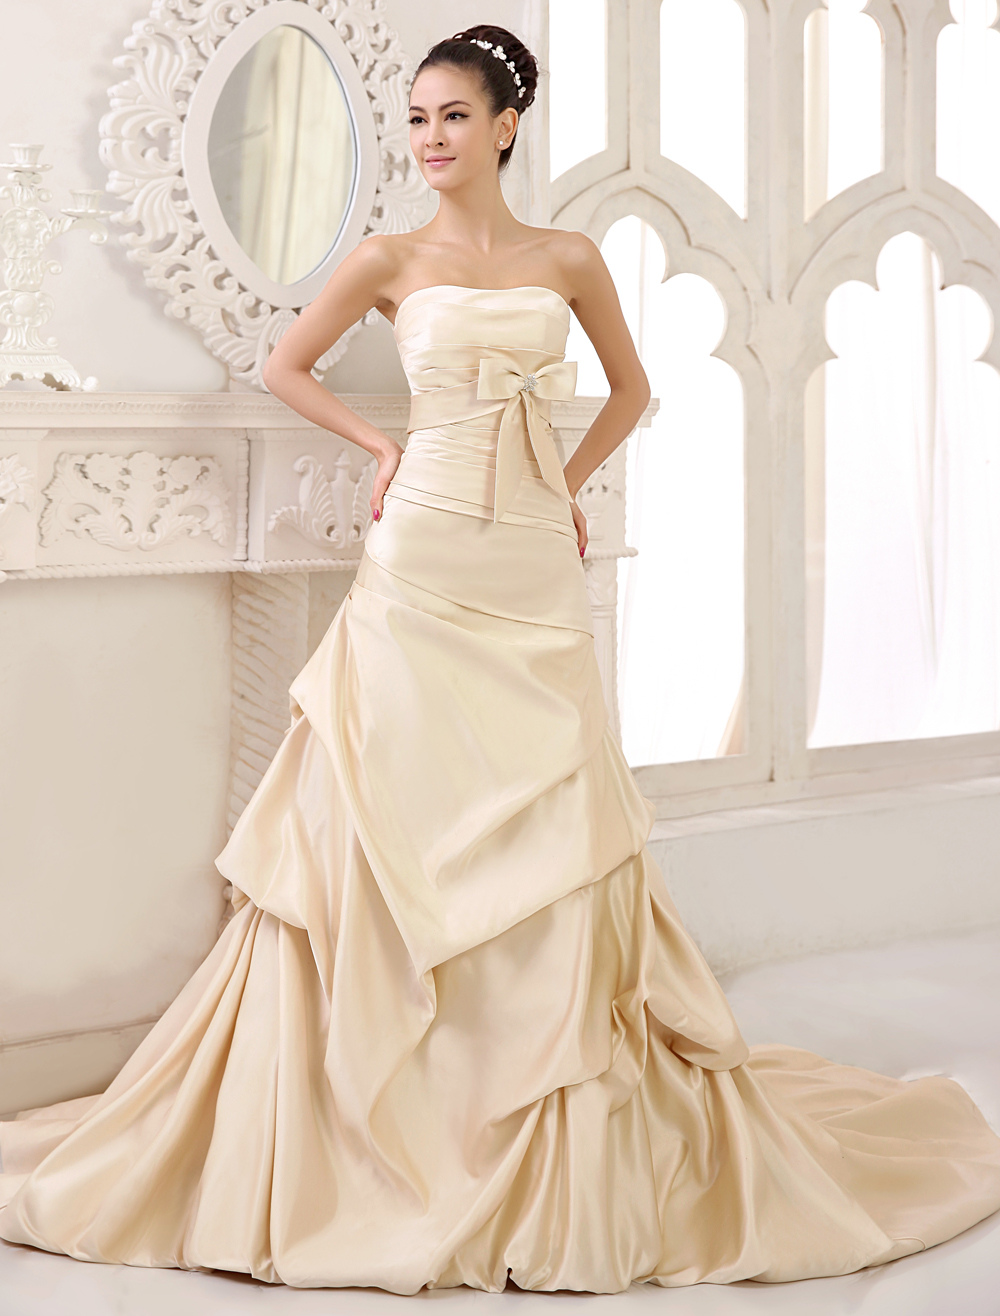 Champagne Wedding Dress Strapless Sash Lace Up Bows Wedding Gown